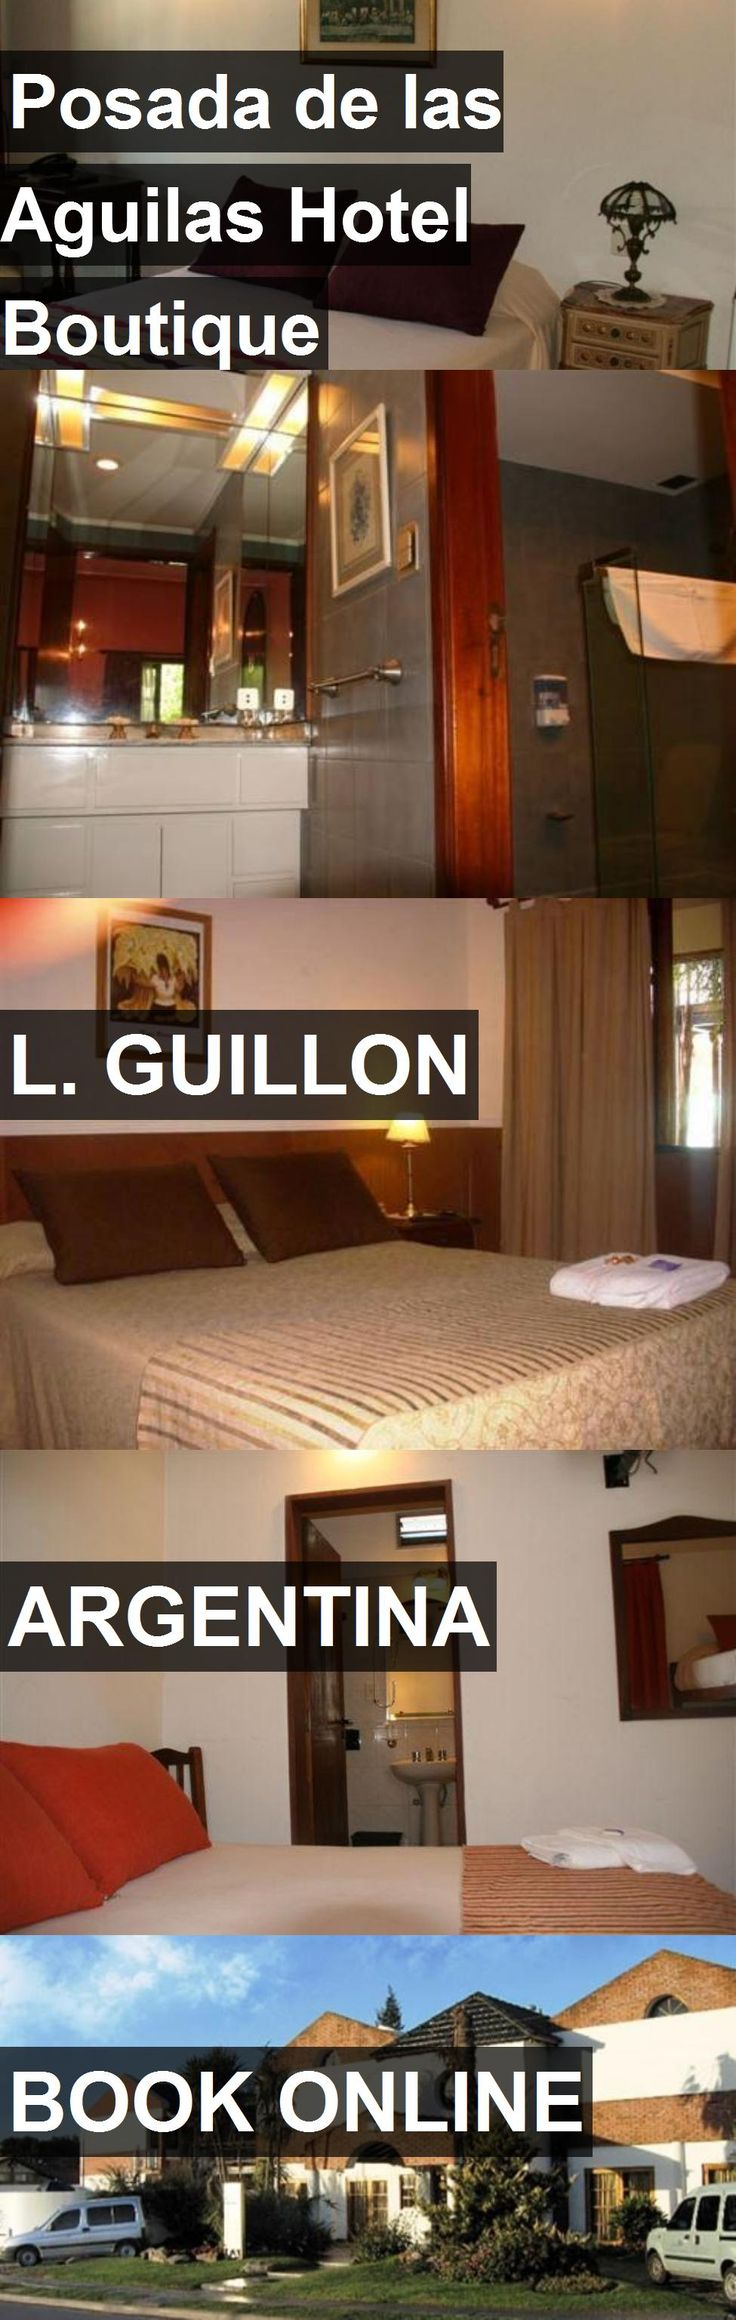 Posada de las Aguilas Hotel Boutique in L. Guillon, Argentina. For more information, photos, reviews and best prices please follow the link. #Argentina #L.Guillon #travel #vacation #hotel